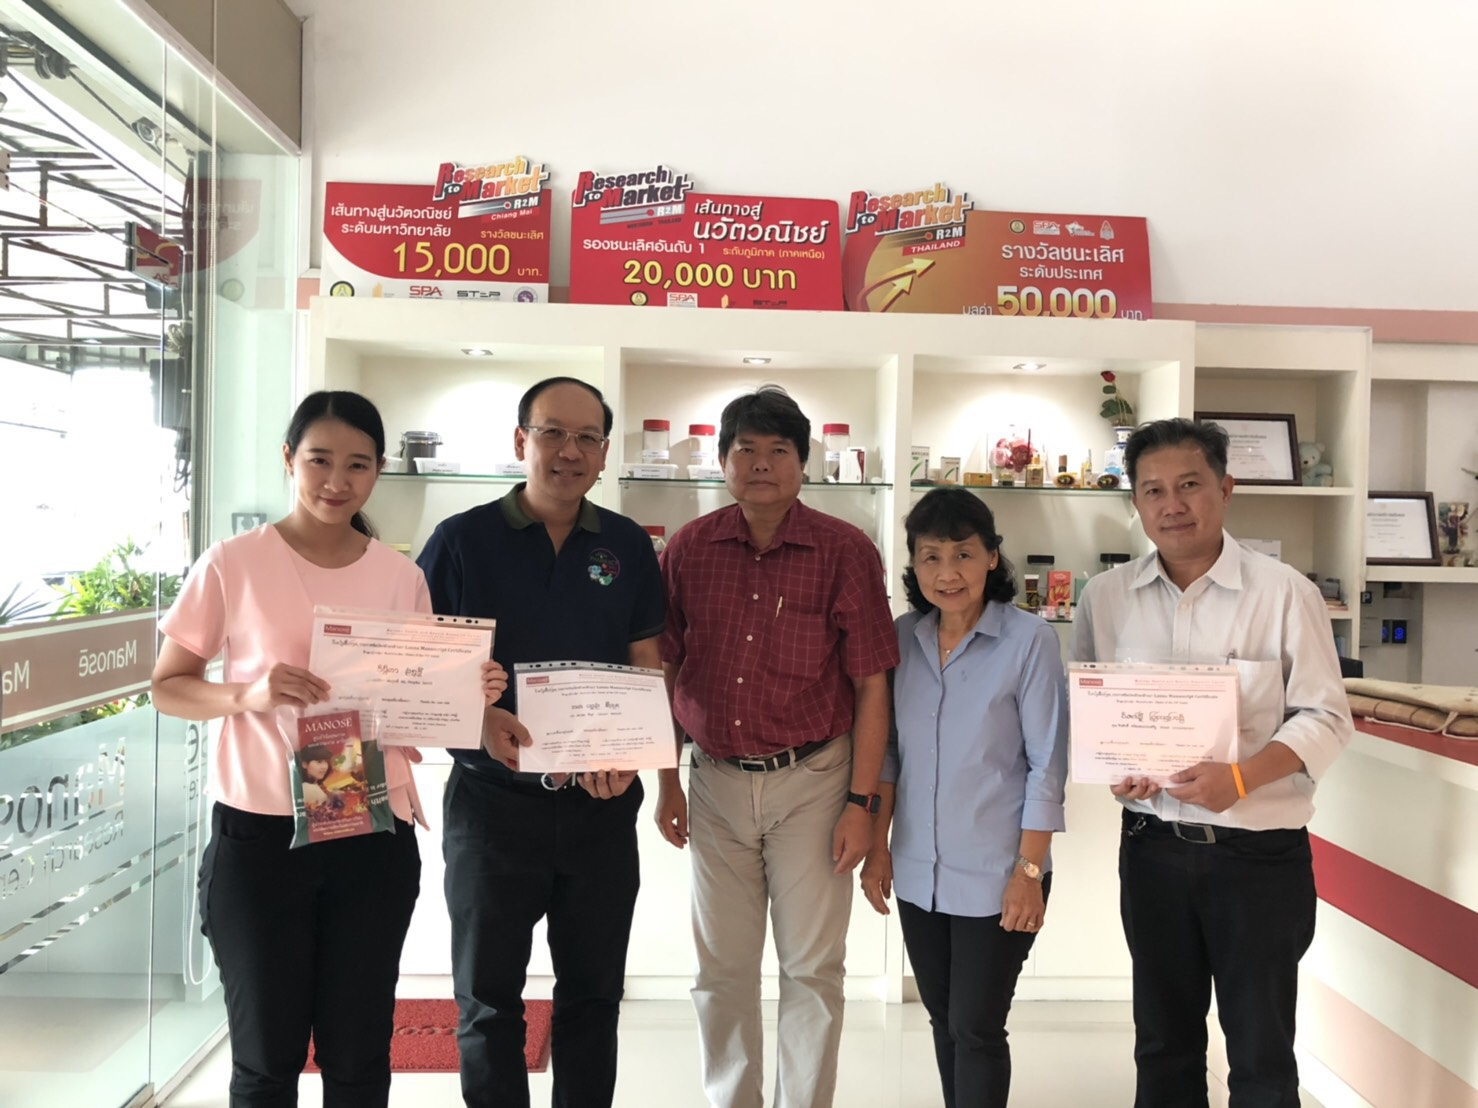 Mr. Seksom Deenuch, Sales and Marketing Director, Mr. Jirasak Jarassanprasert and Ms. Pimpika Somrit from A.N.B. Laboratories Co., Ltd. and Medic Pharma have visited Manose Health and Beauty Research Center